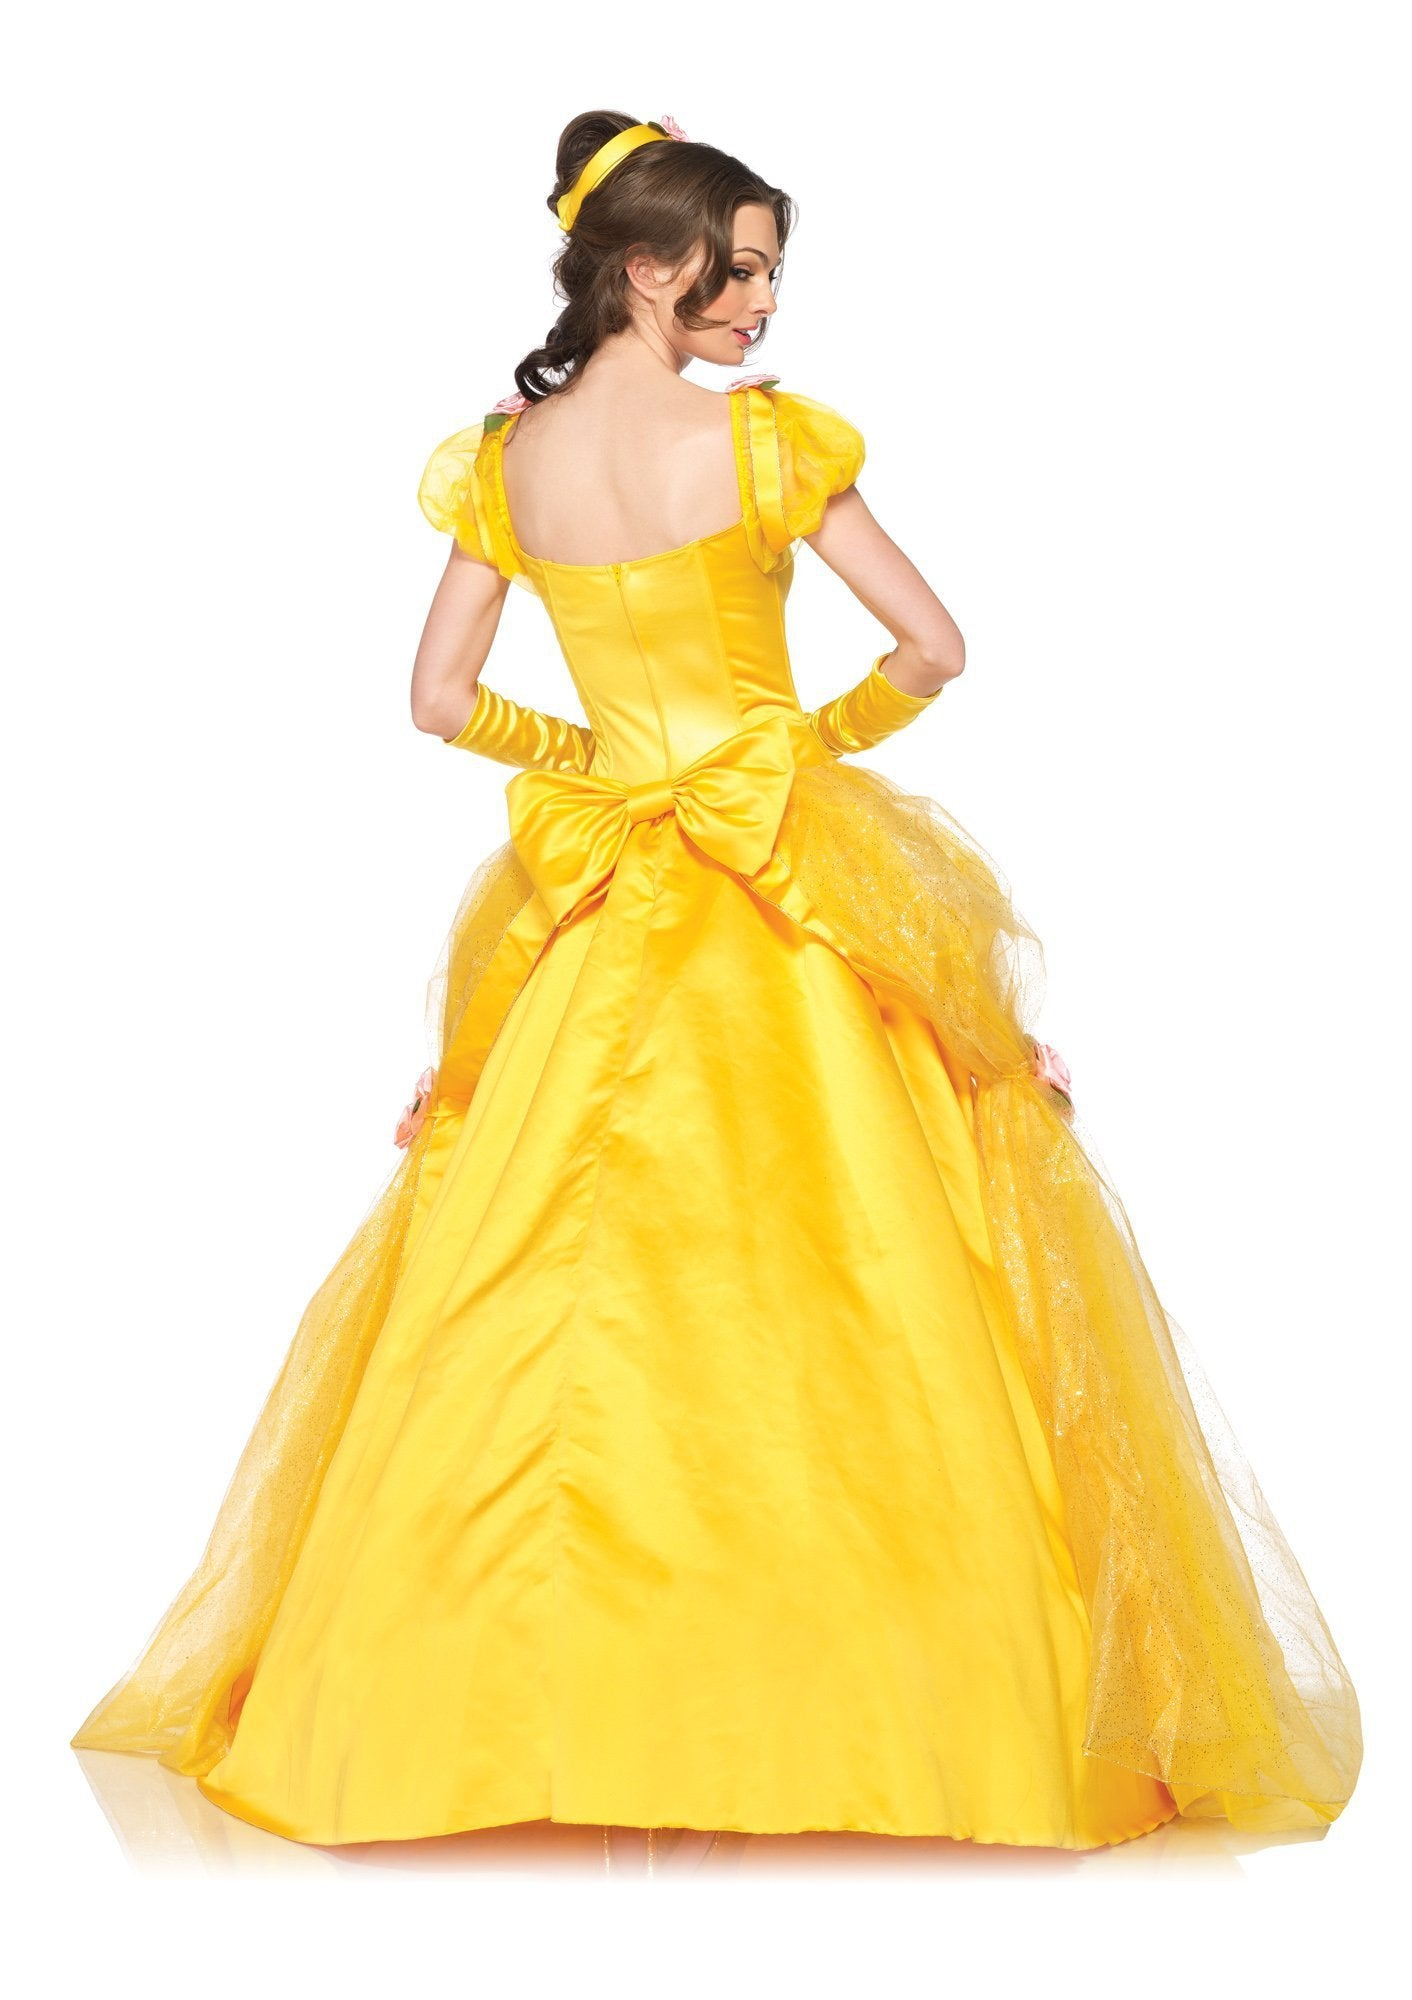 Leg Avenue Costumes Deluxe Belle Costume - Beauty & the Beast